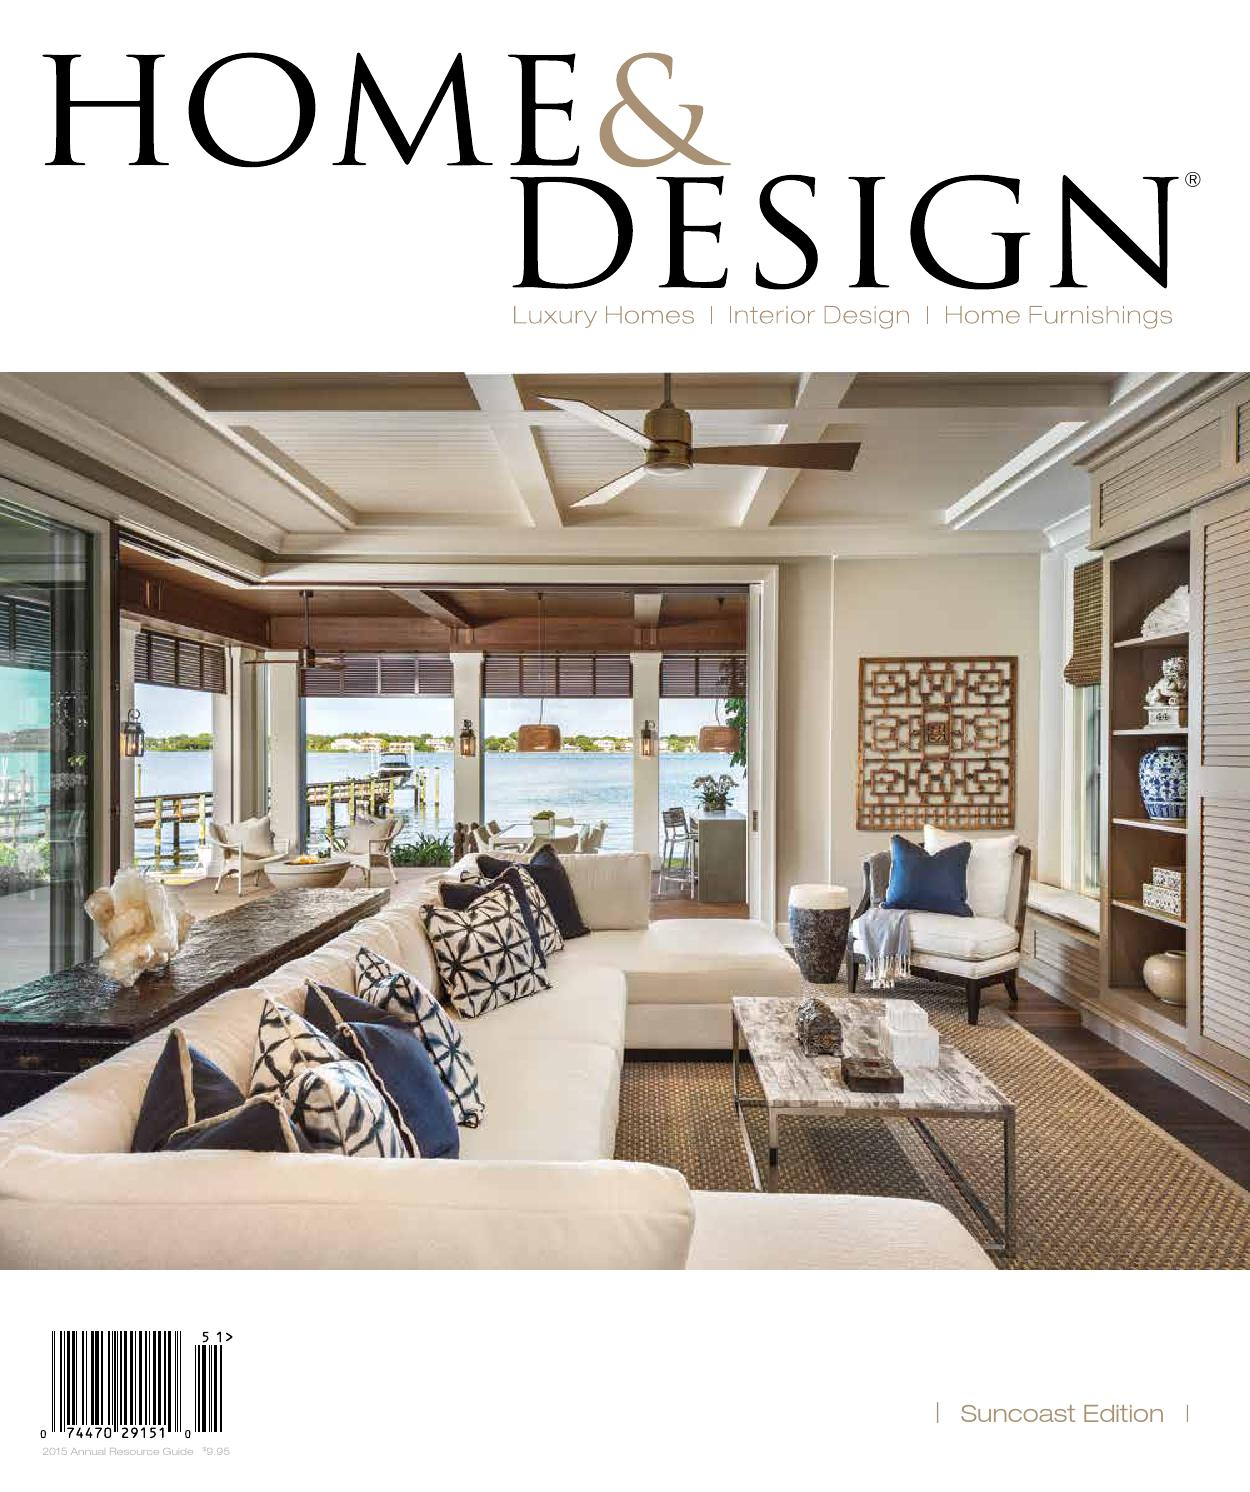 Home design magazine annual resource guide 2015 Interiors and decor magazine